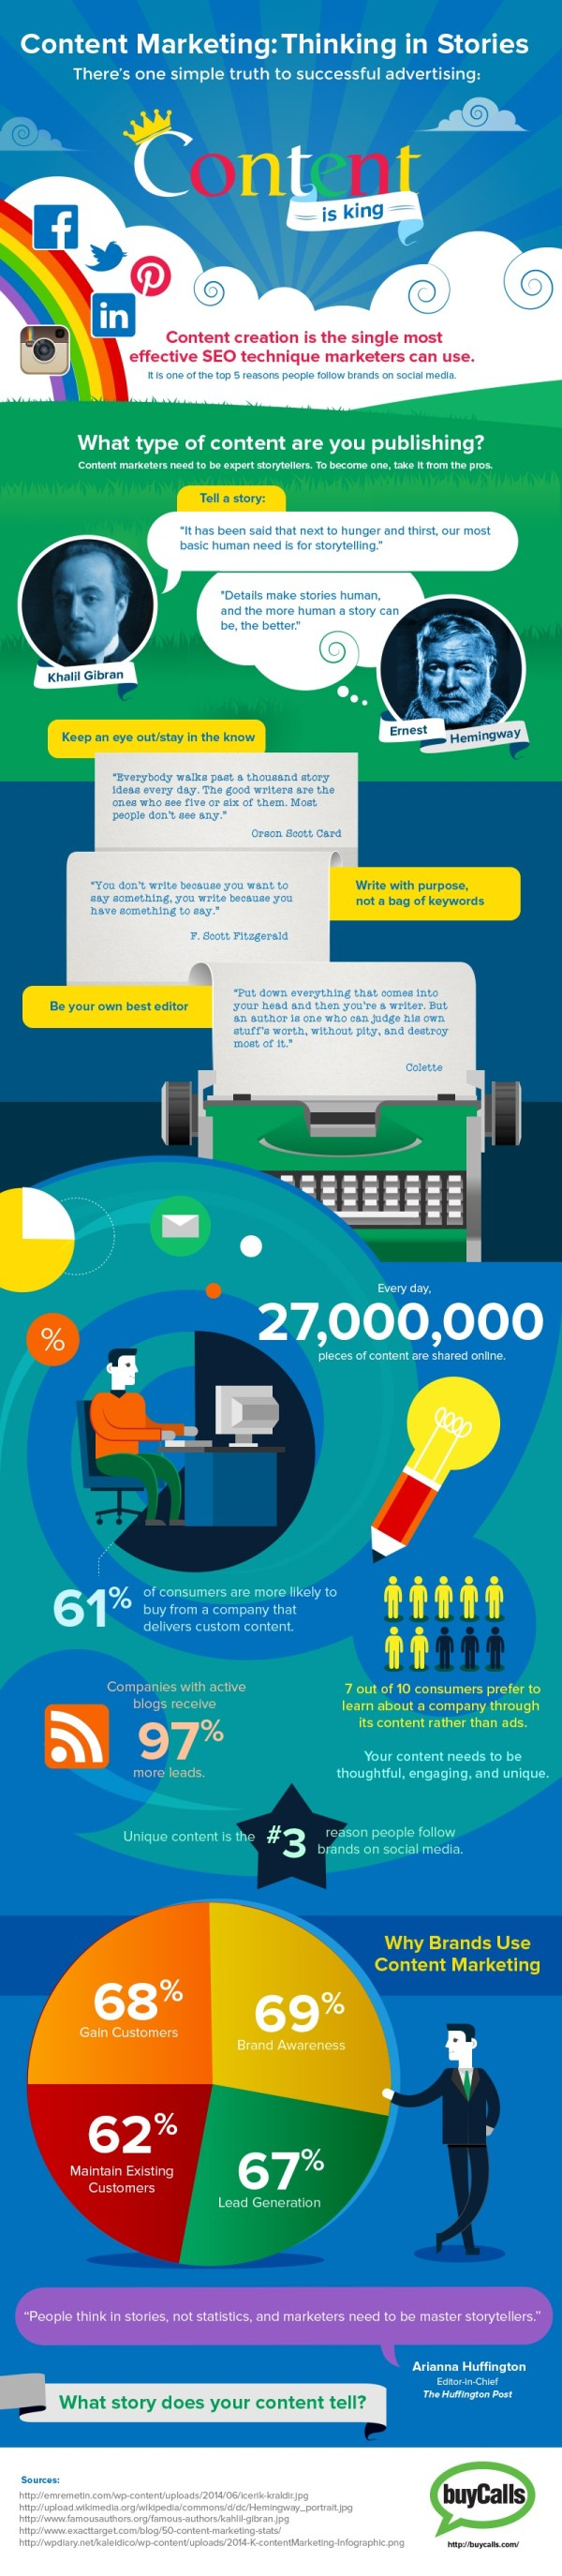 Content Marketing Thinking In Stories Infographic